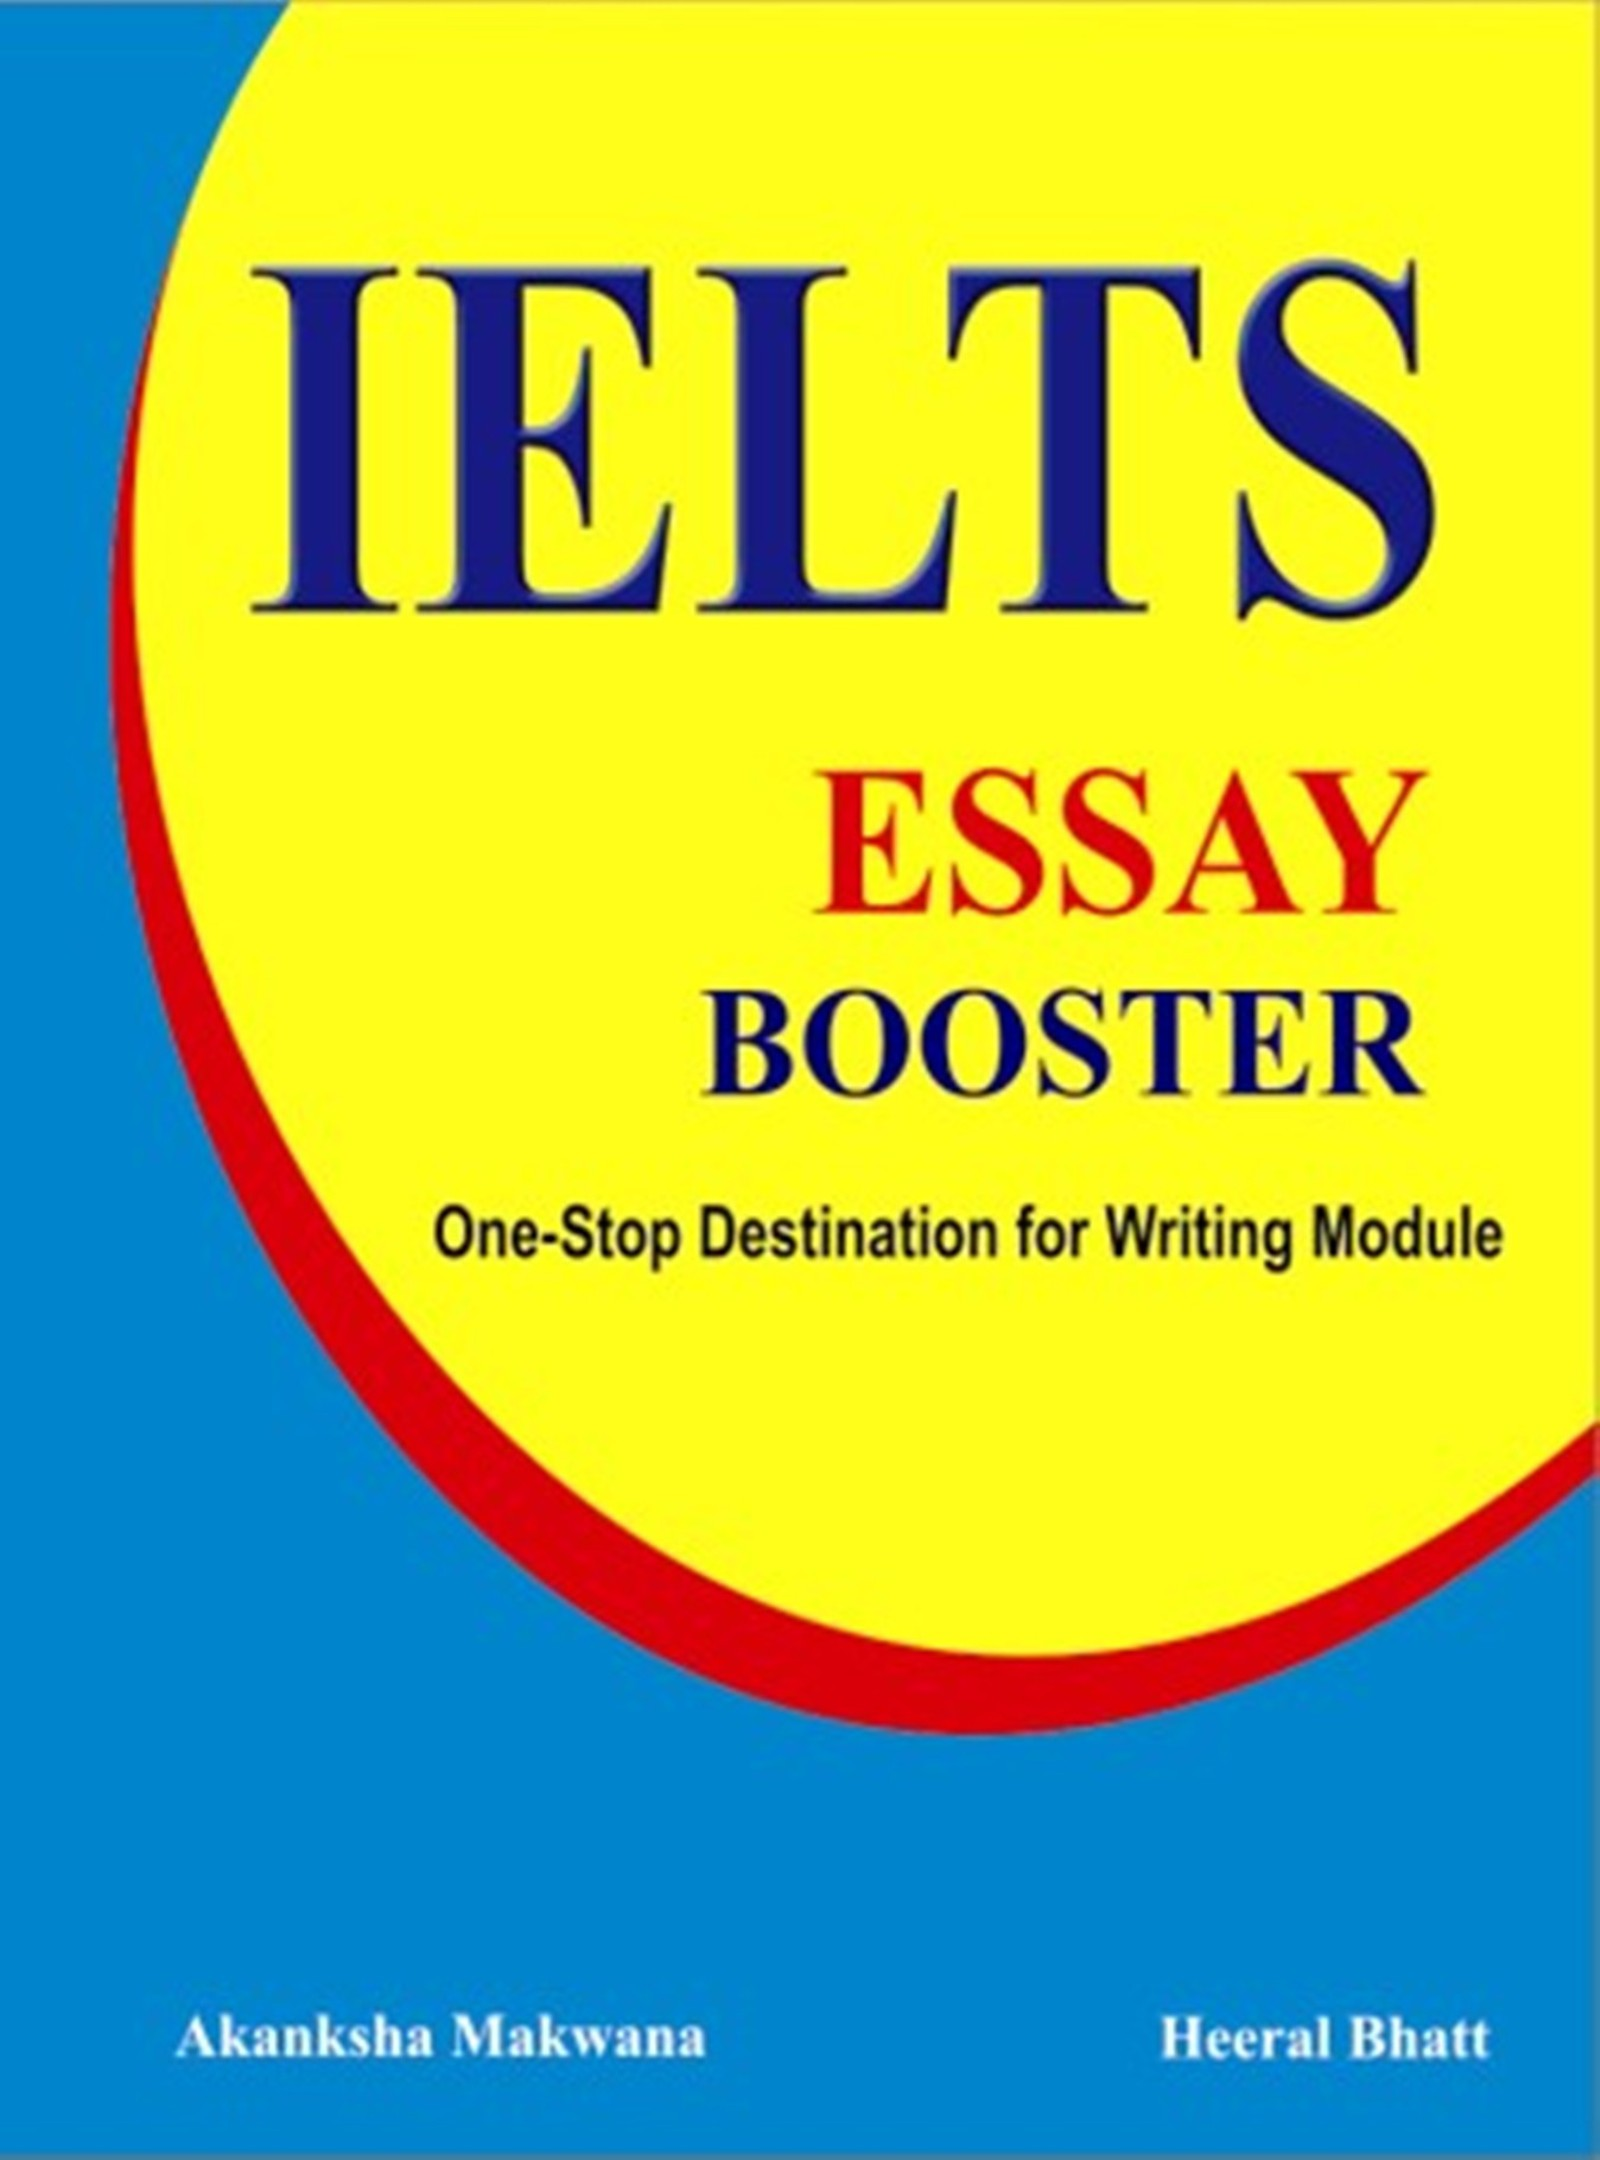 cheap masters essay writing for hire for school professional     Where can i buy papers online Essay writin service PDF DOWNLOAD Writing the  Winning Thesis or